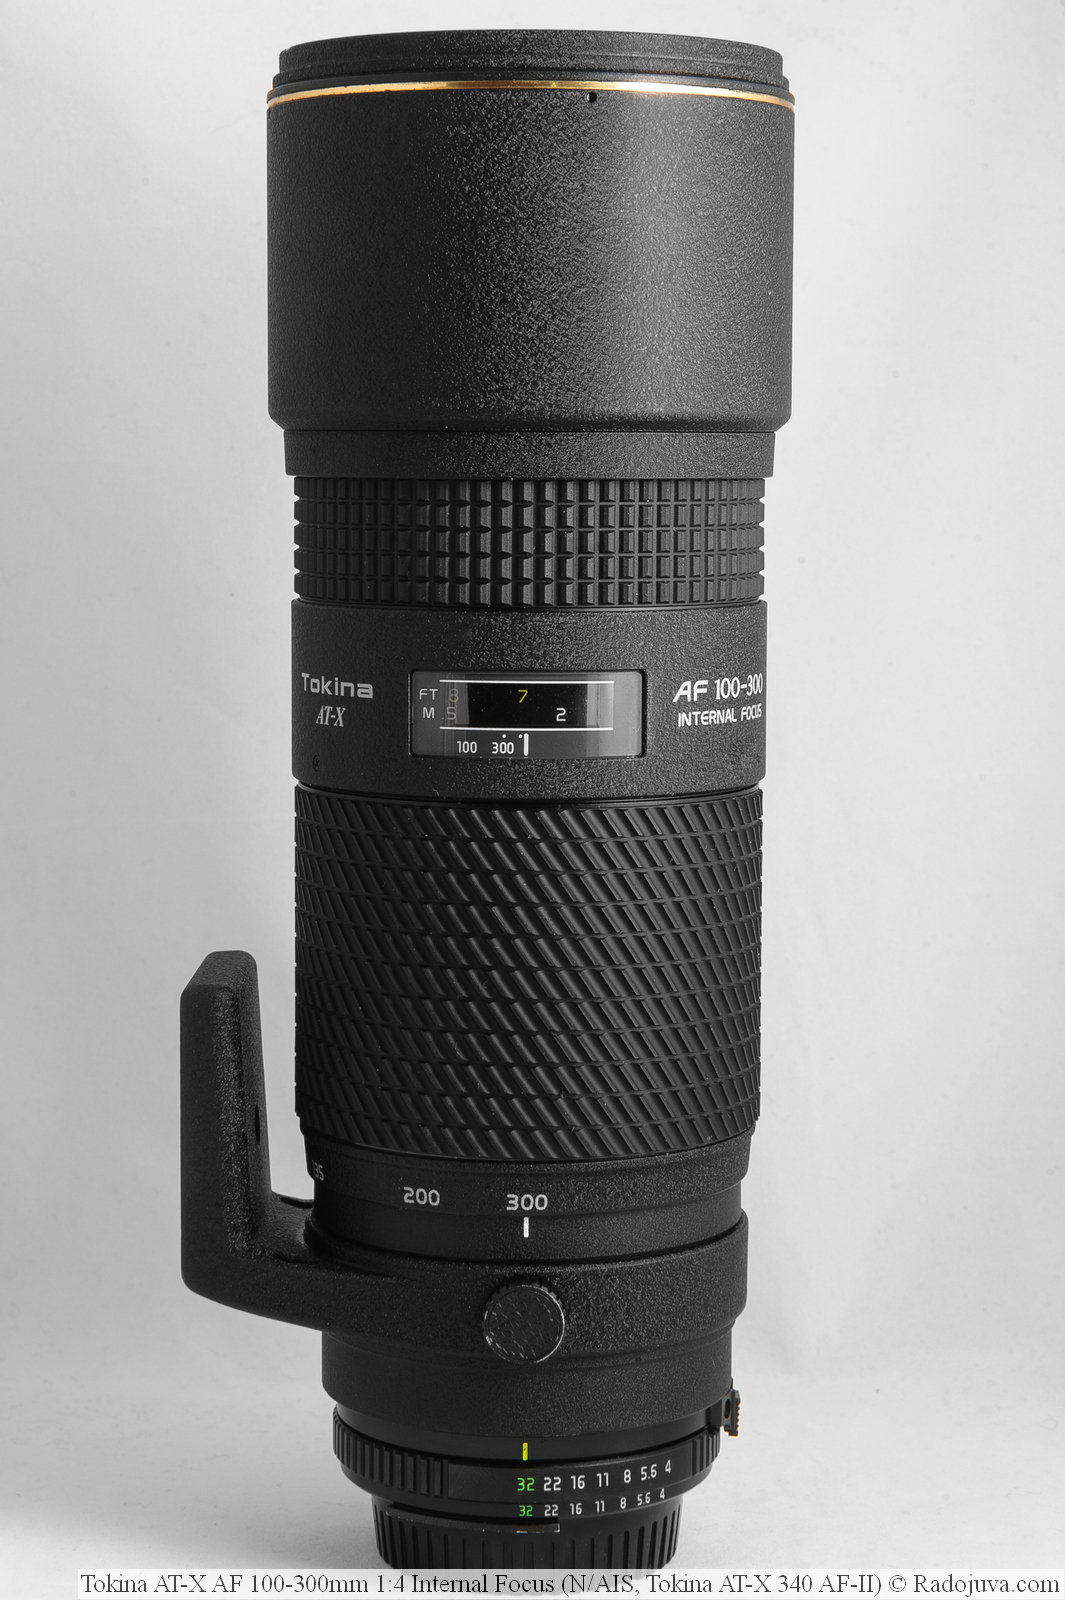 Tokina AT-X AF 100-300mm 1:4 Internal Focus (N/AIS, Tokina AT-X 340 AF-II)